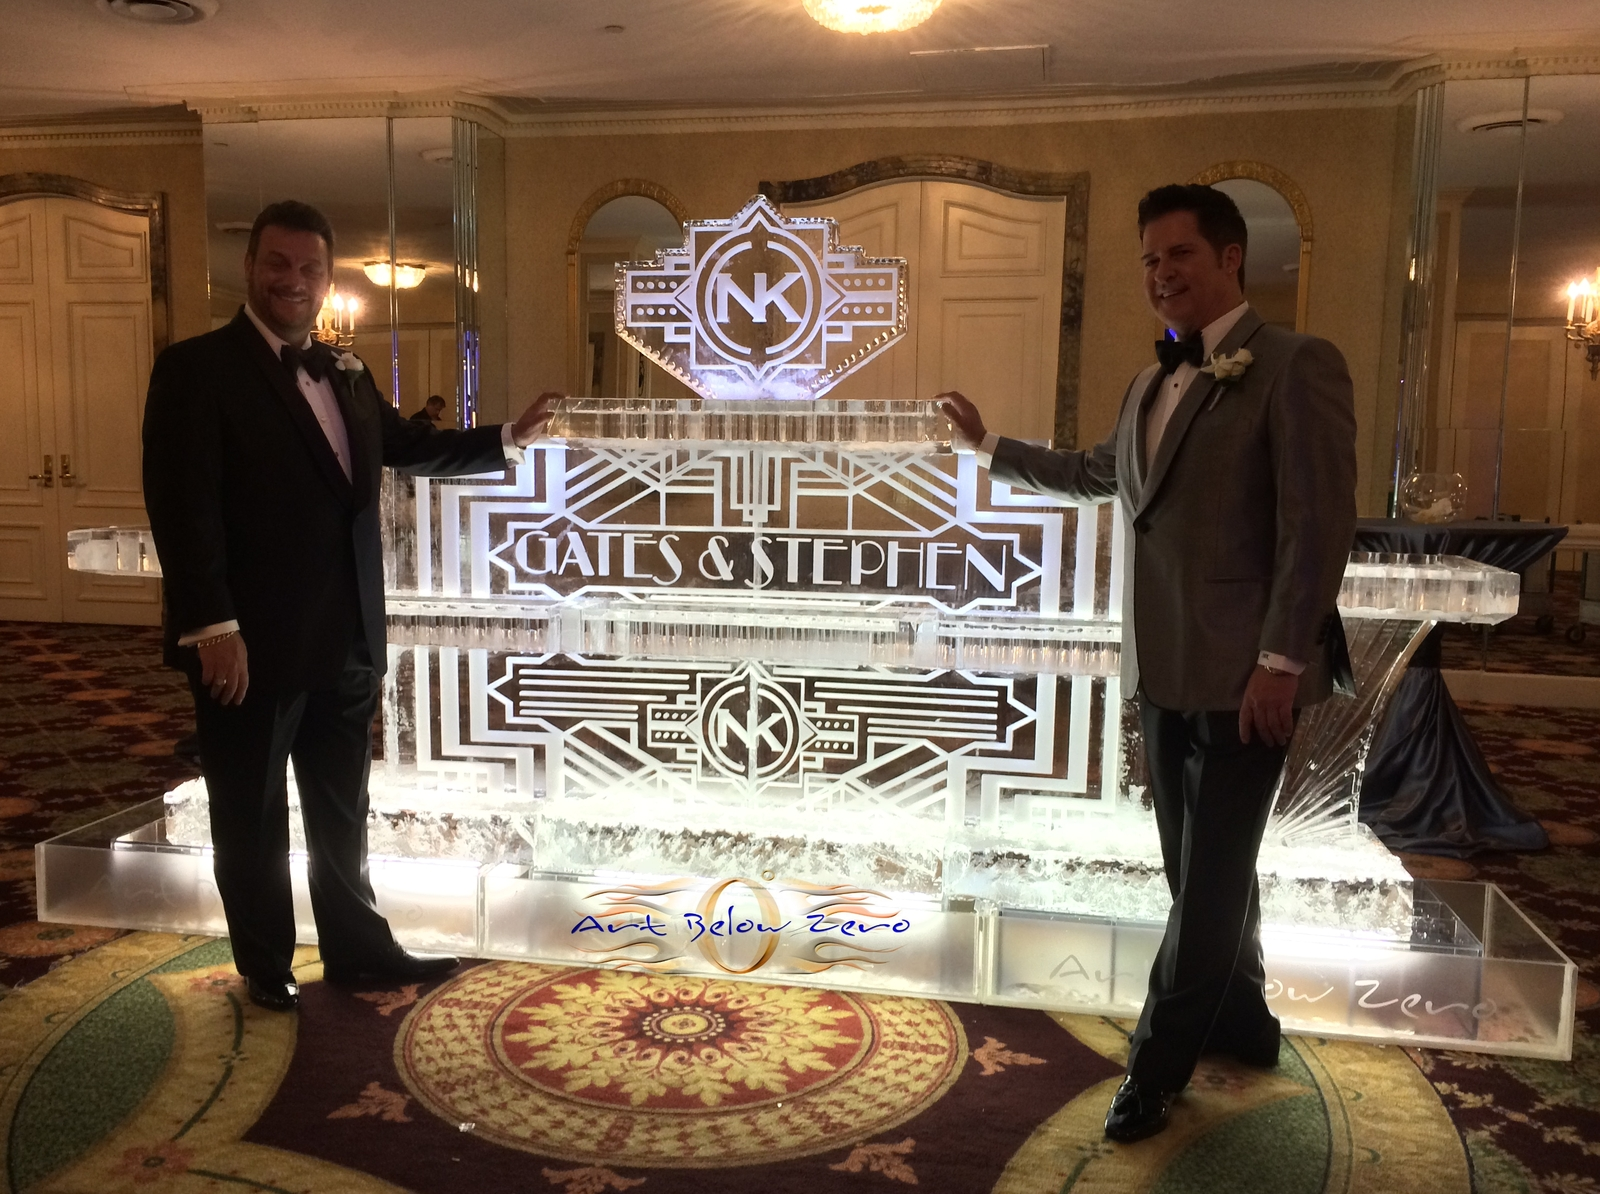 Art_deco_seafood_table_for_gates_and_stephen_ice_sculpture